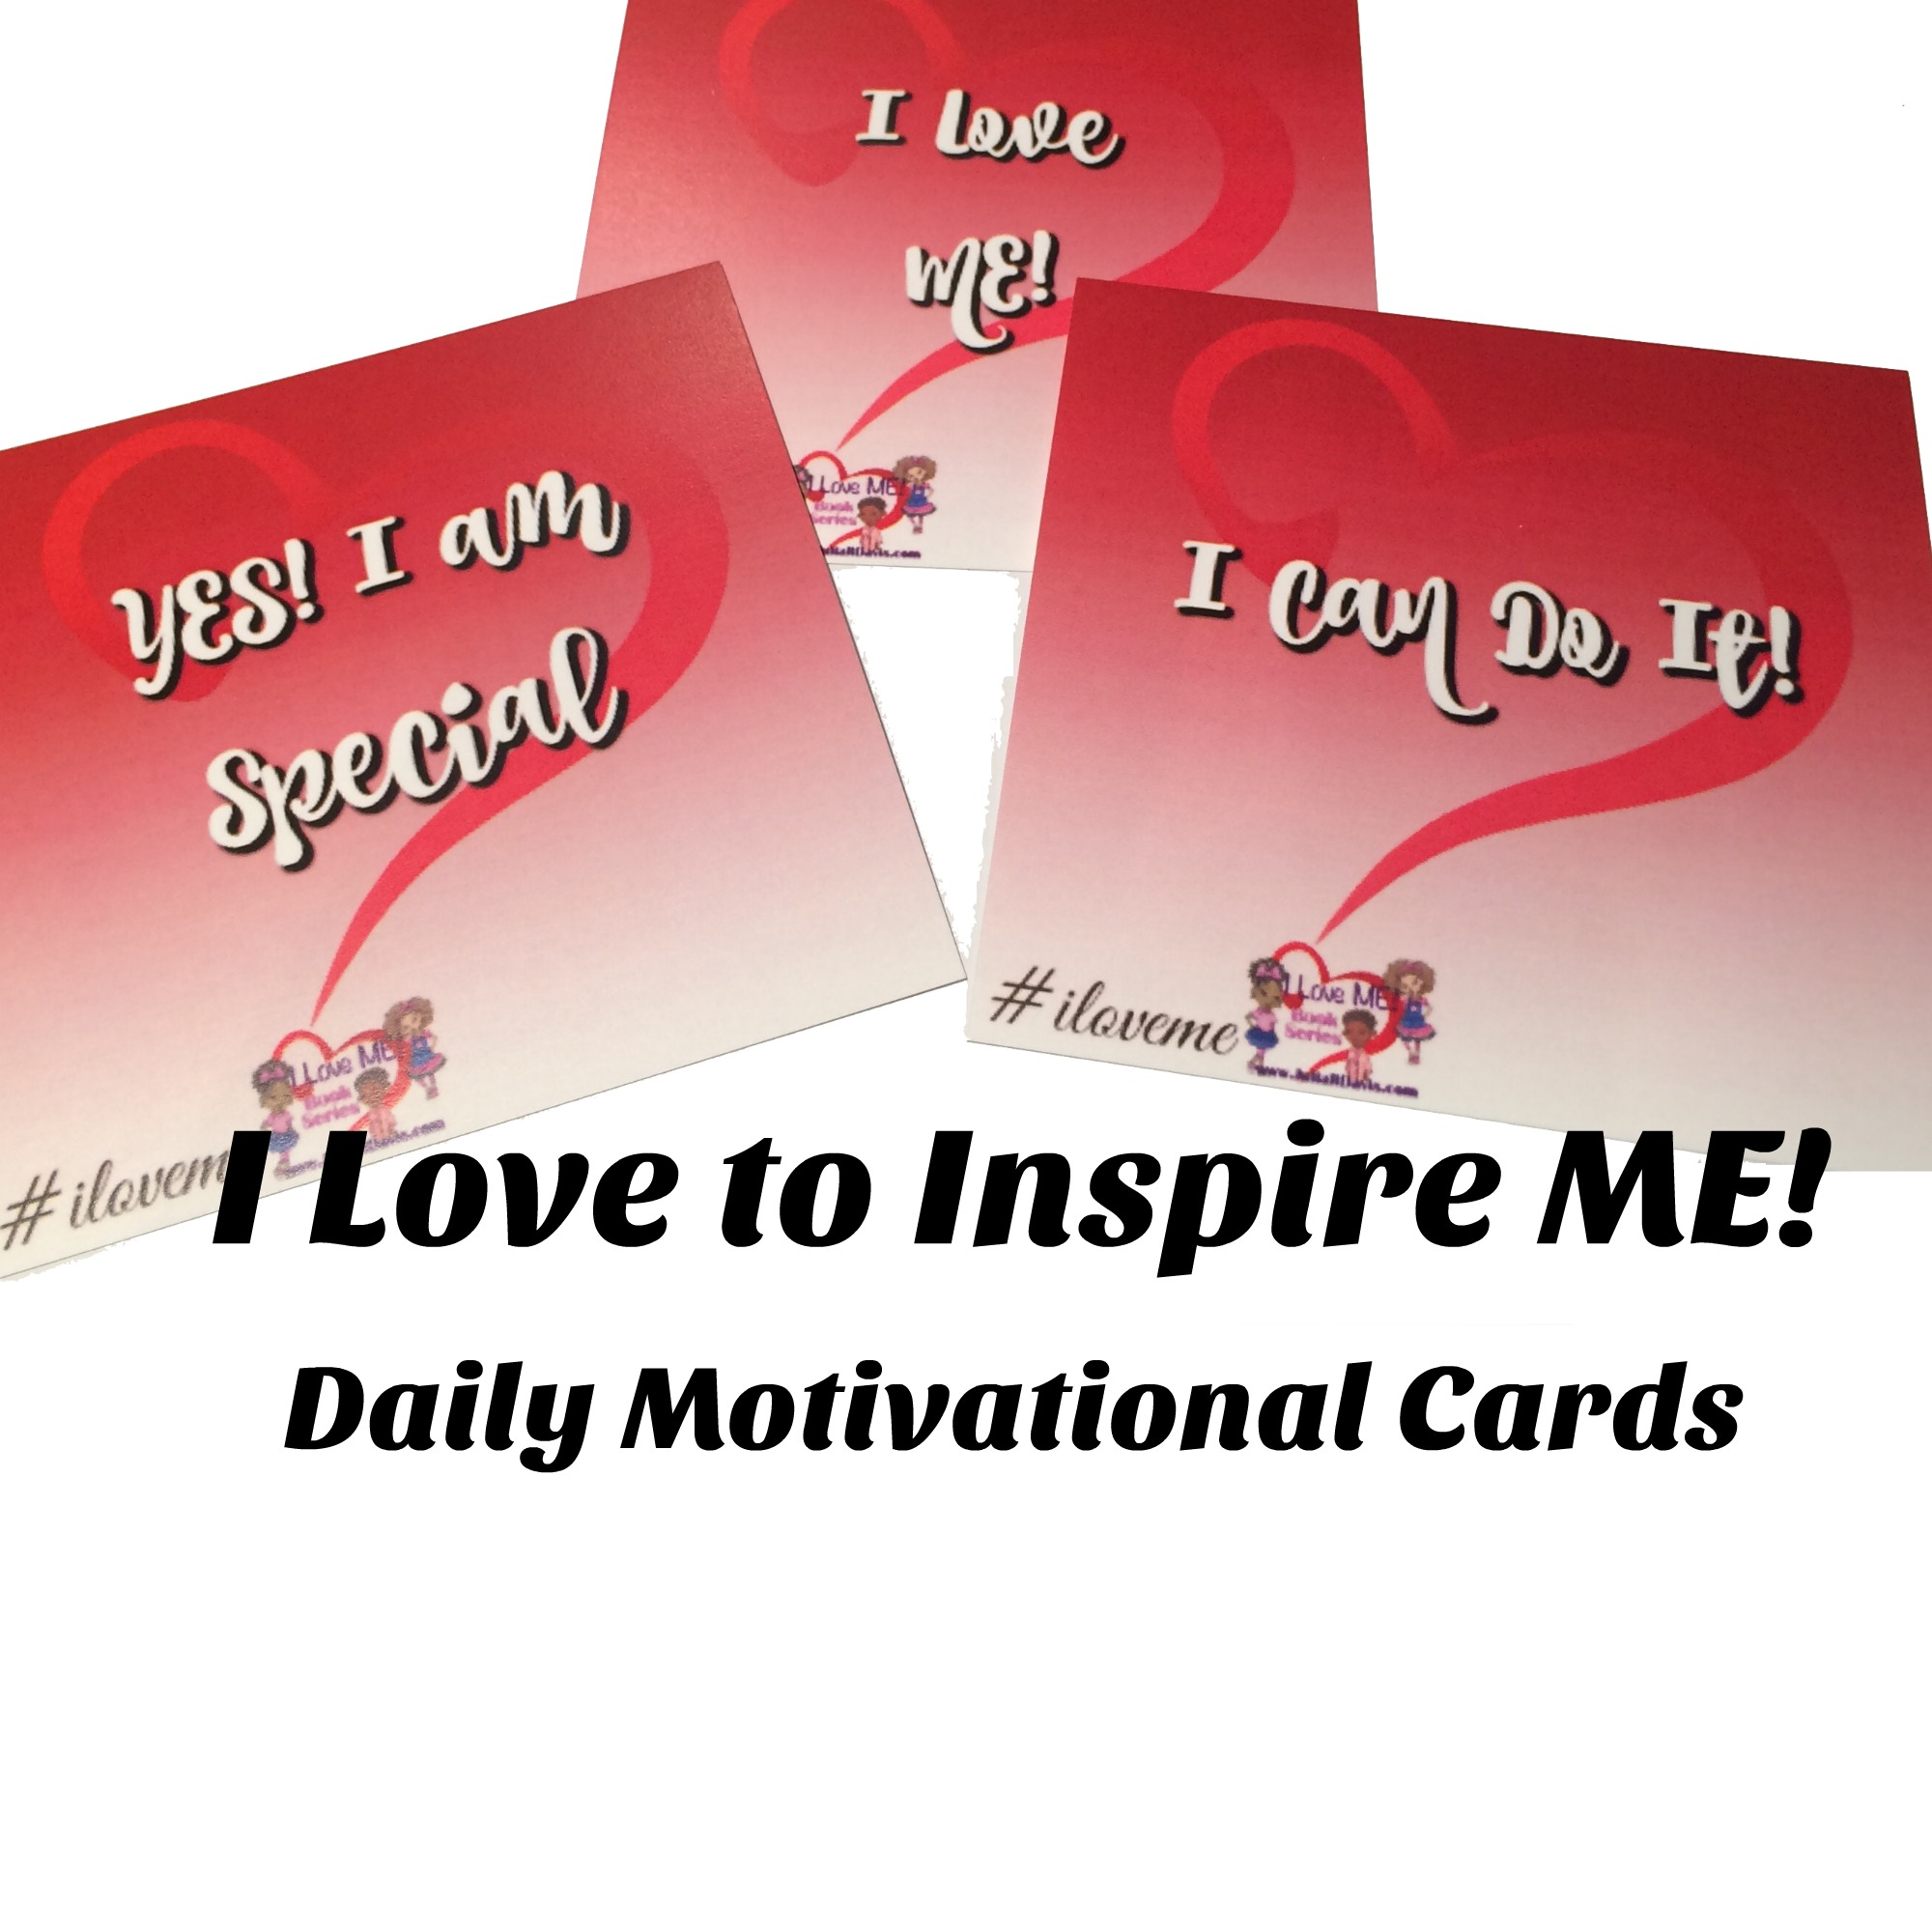 I Love to Inspire ME! - Daily Motivational Cards